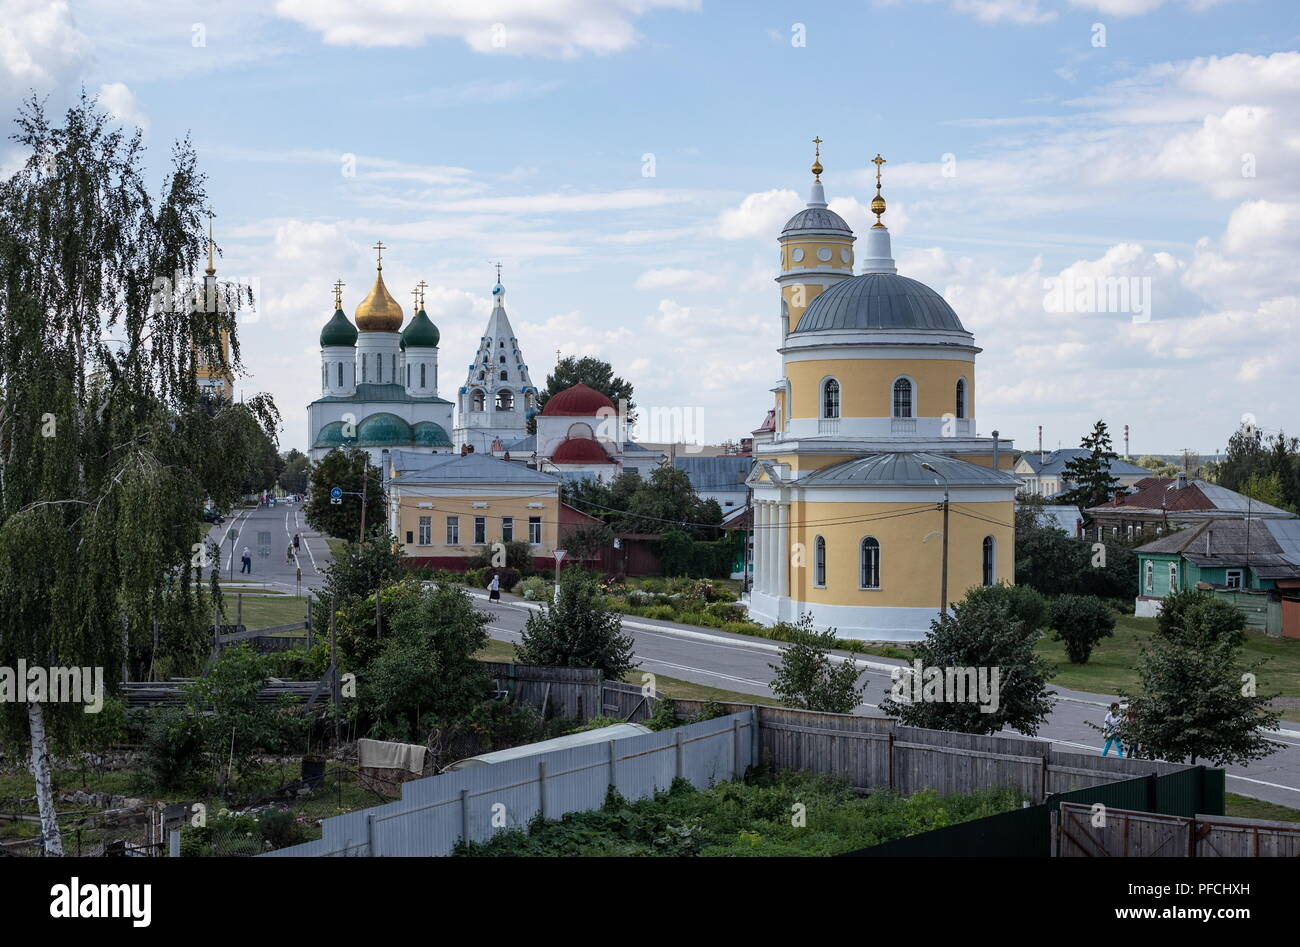 MOSCOW REGION, RUSSIA - AUGUST 20, 2018: A view of the Dormition Cathedral, a hipped-roof belfry of the Church of The Theotokos of Tikhvin, the Nikola Gostiny Church, and the Church of the Exaltation of the Holy Cross from a window of Suranov Soap Trade, a museum shop in the city of Kolomna, Moscow Region, based on an actual shop opened by merchant Grigory Suranov in the 1890s to sell products of a local soap factory. Stanislav Krasilnikov/TASS Stock Photo